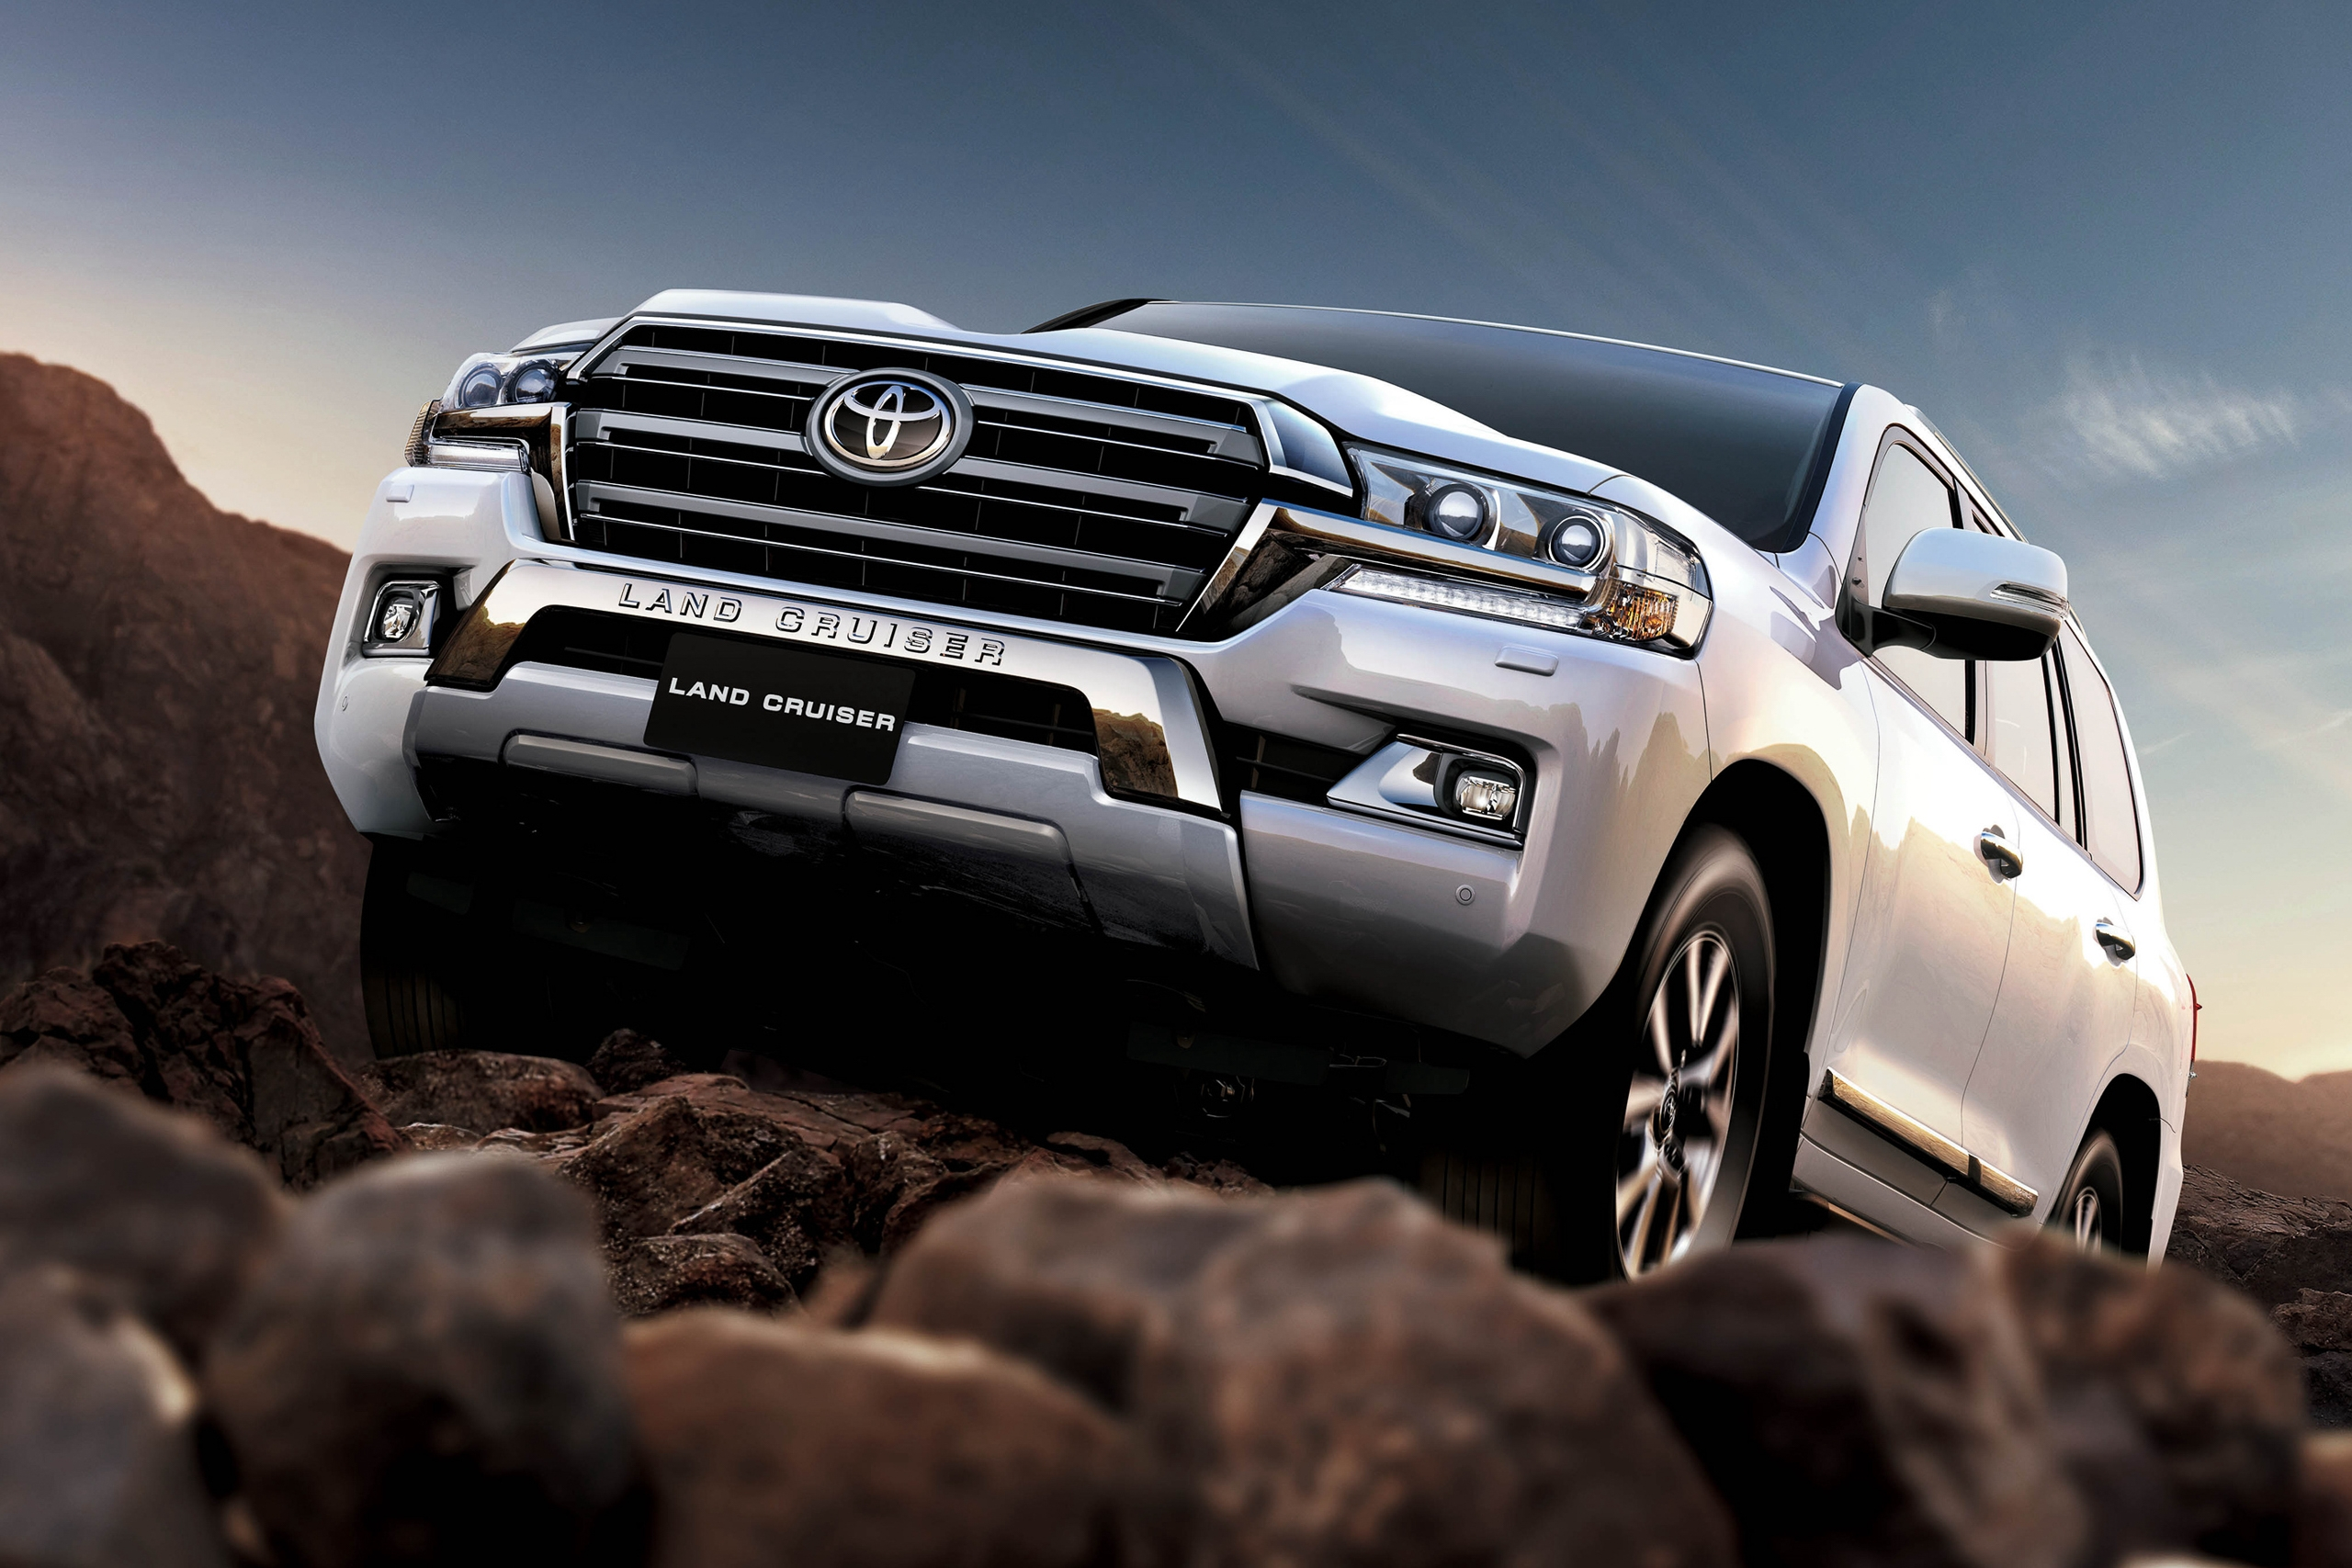 49 All New 2020 Land Cruiser Style